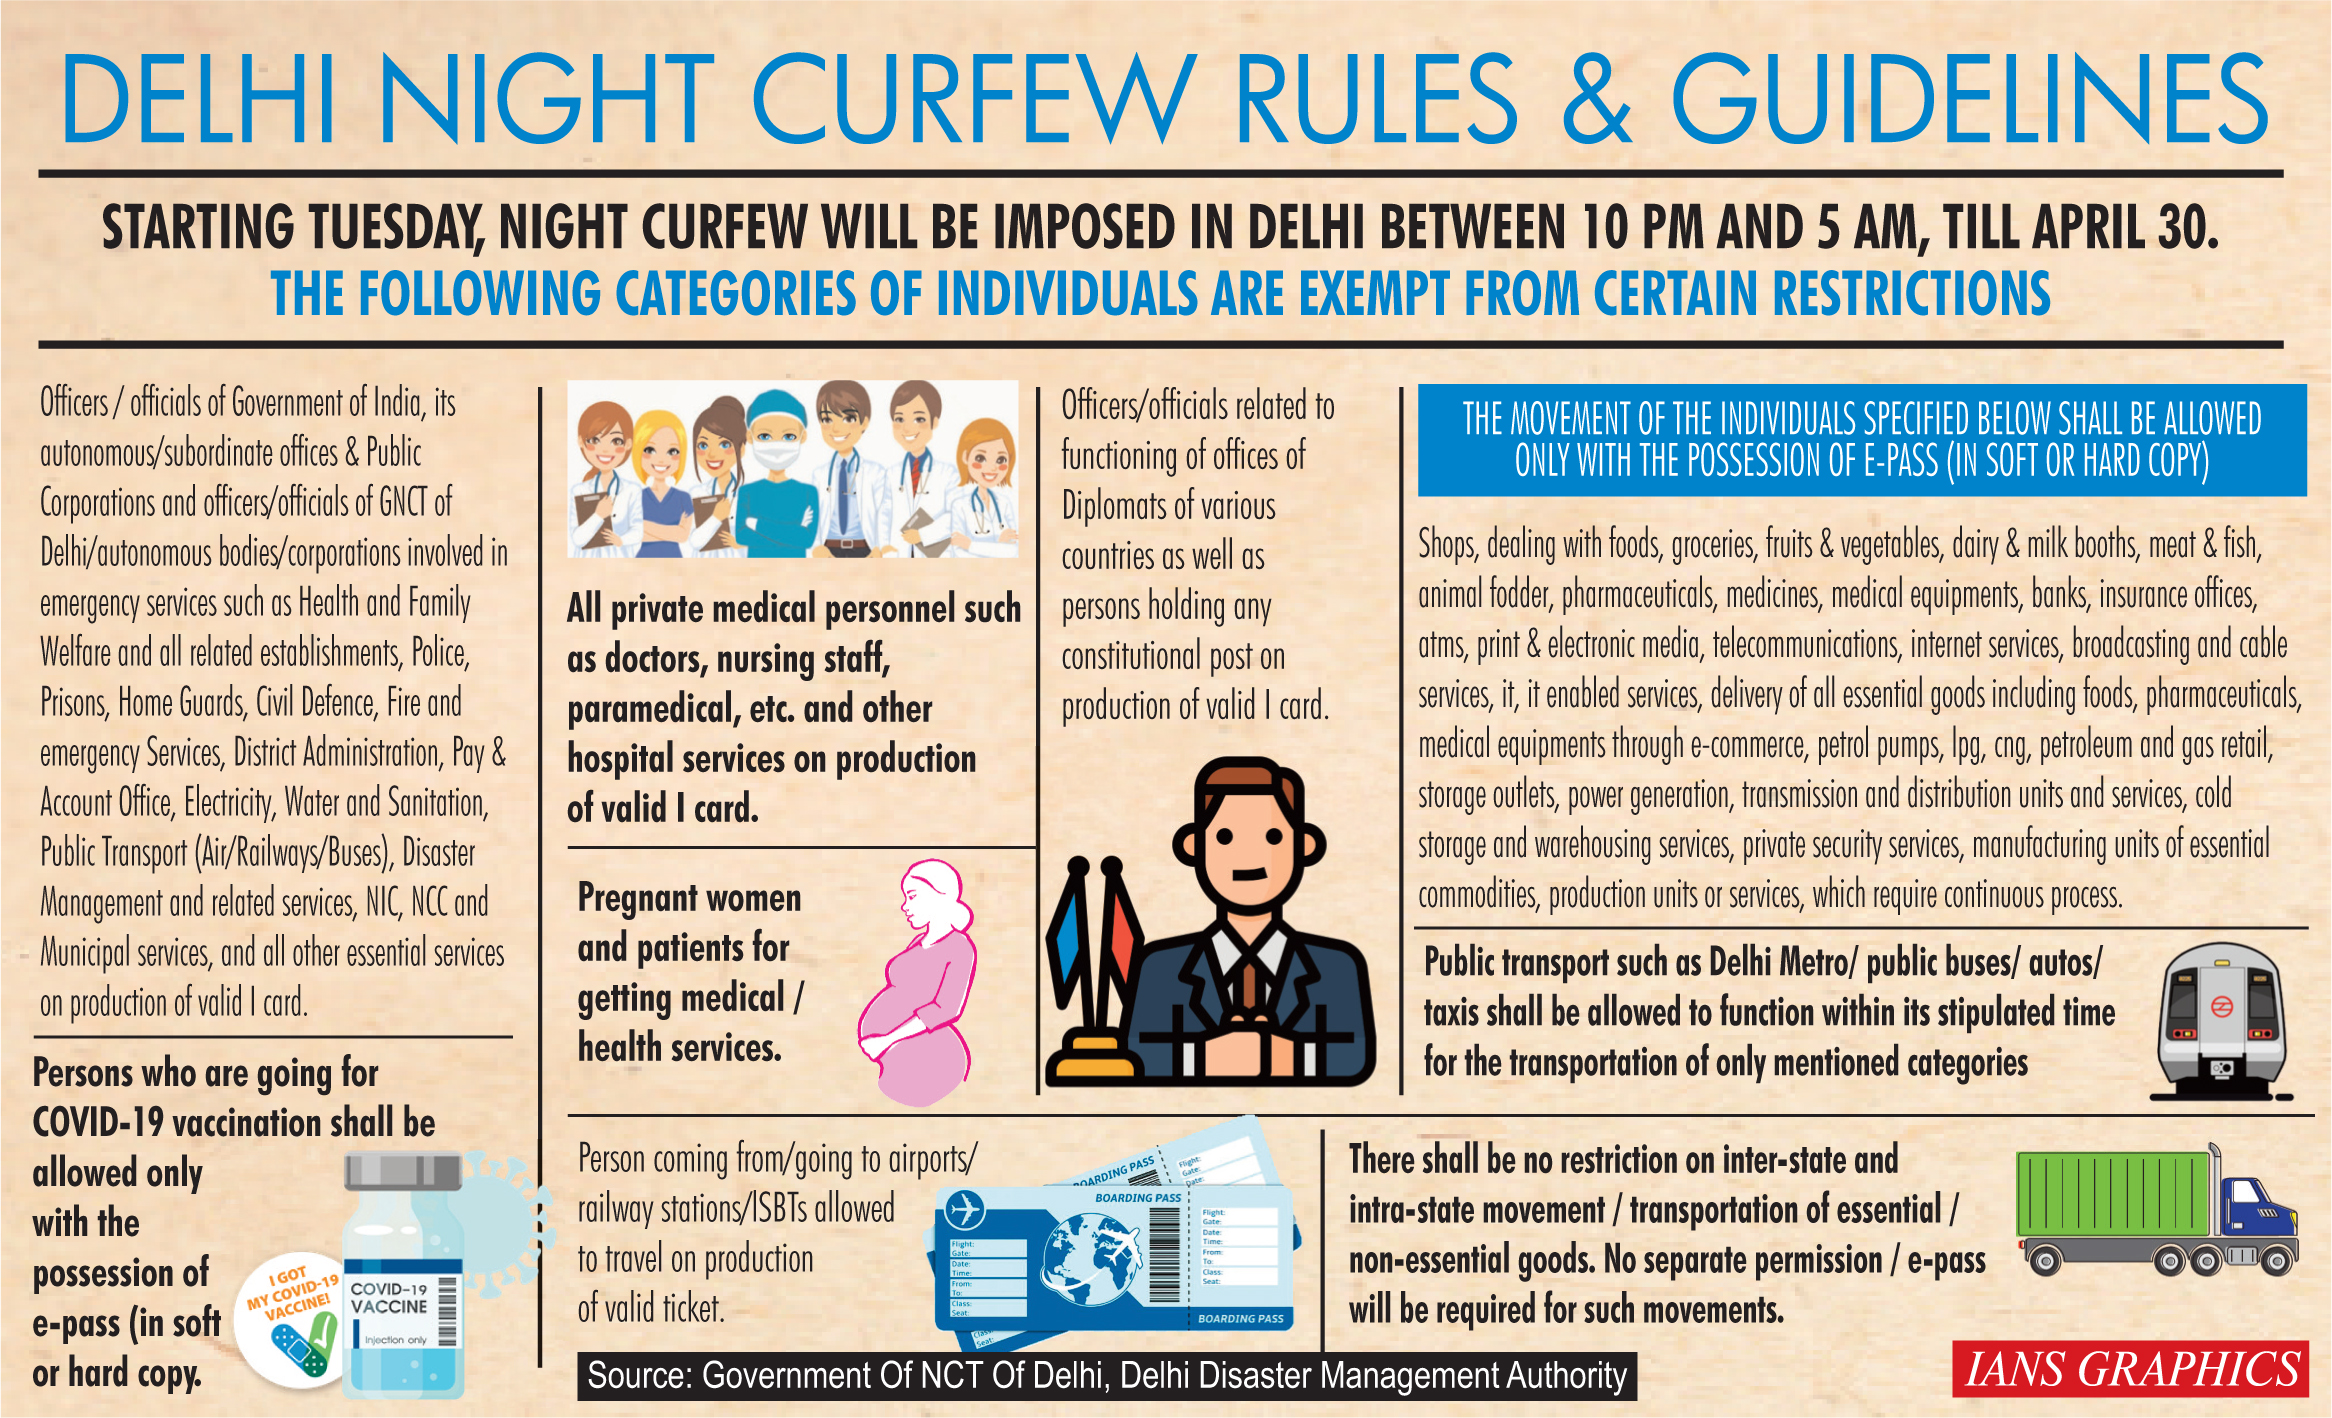 Delhi night curfew: Who is exempted and how to get e-pass